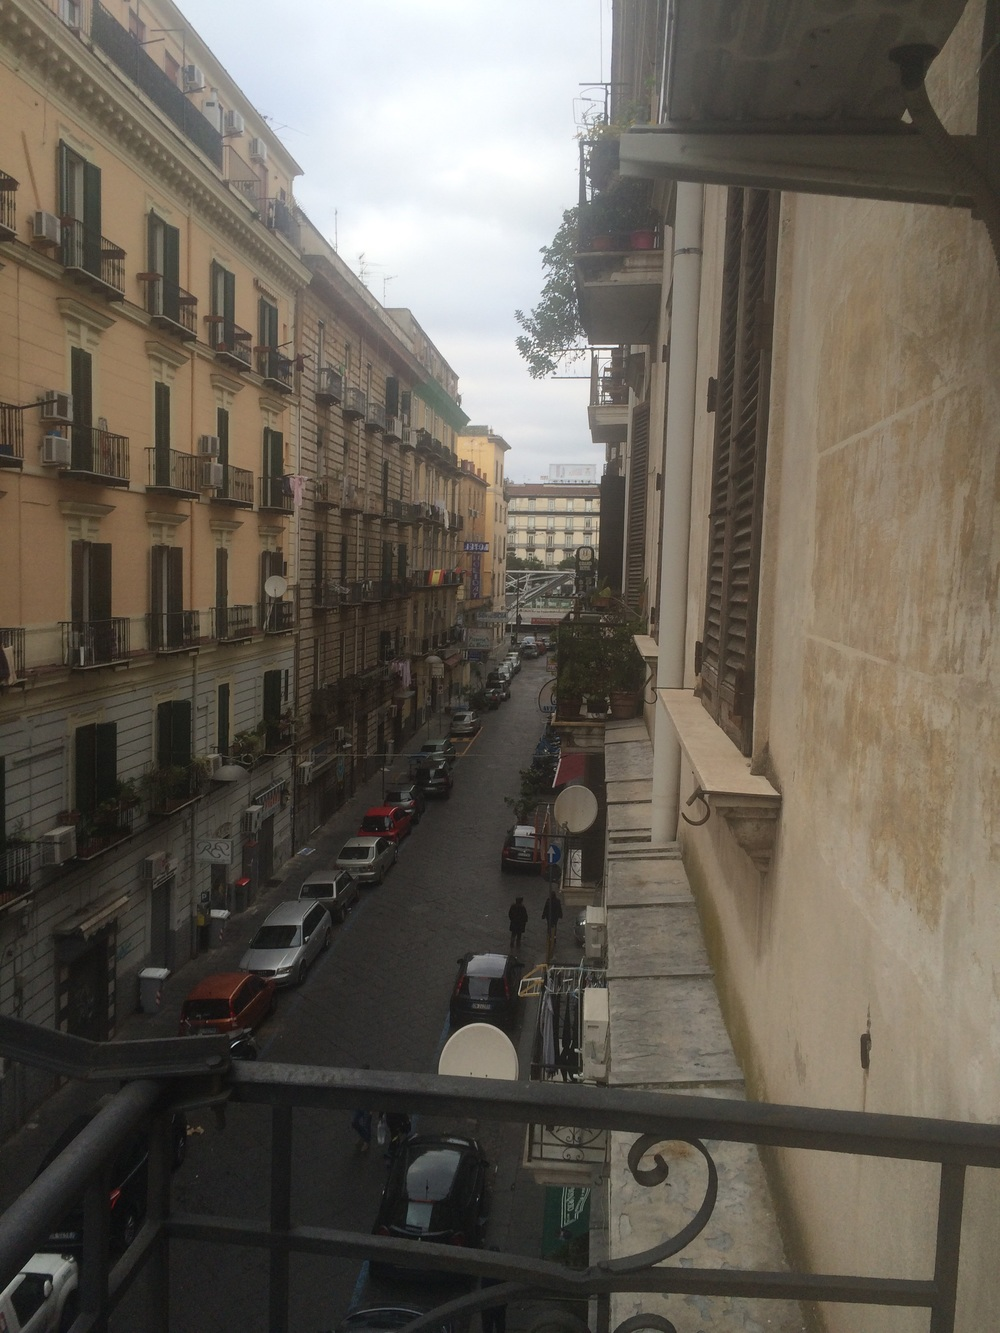 Our street in Naples. We are within walking distance of the Garibaldi Train Station and Piazza